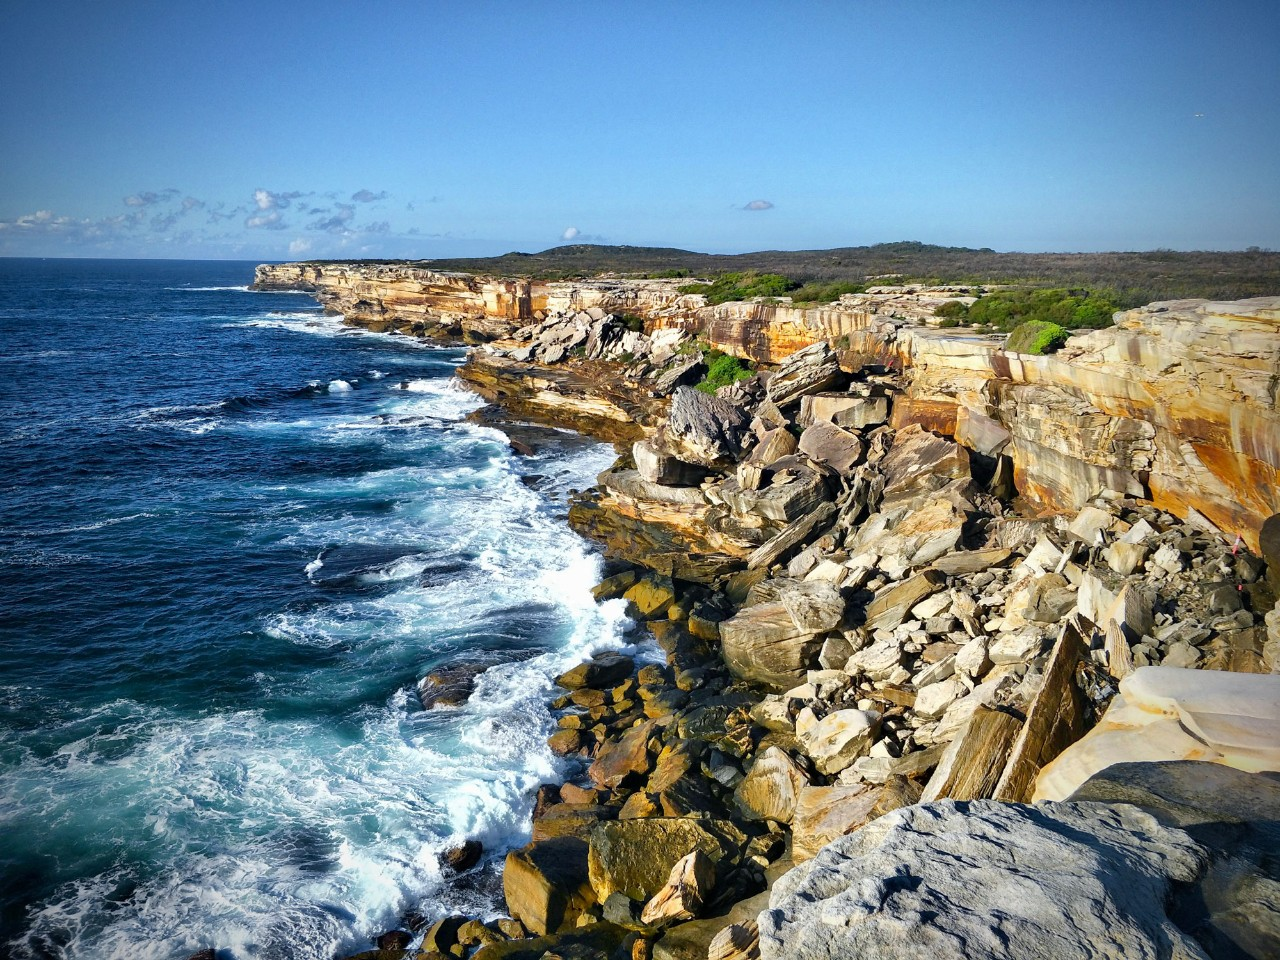 Cape Solander looking south with the ocean on the left of the cliffs